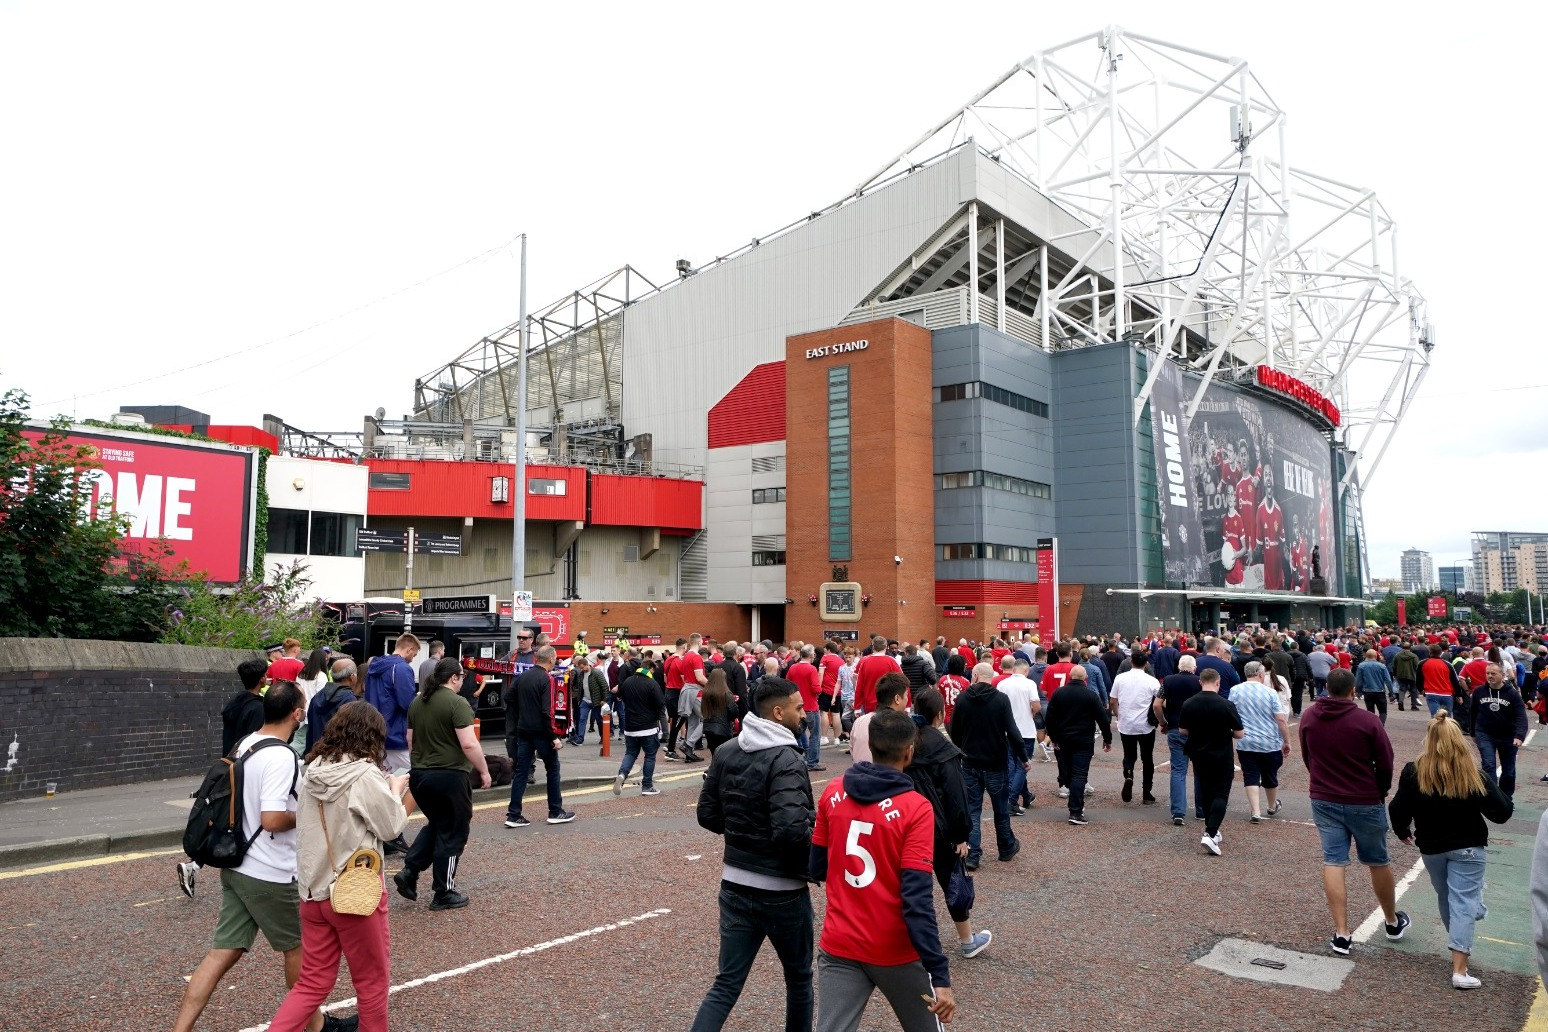 Manchester United commit to pay all matchday staff more than real living wage